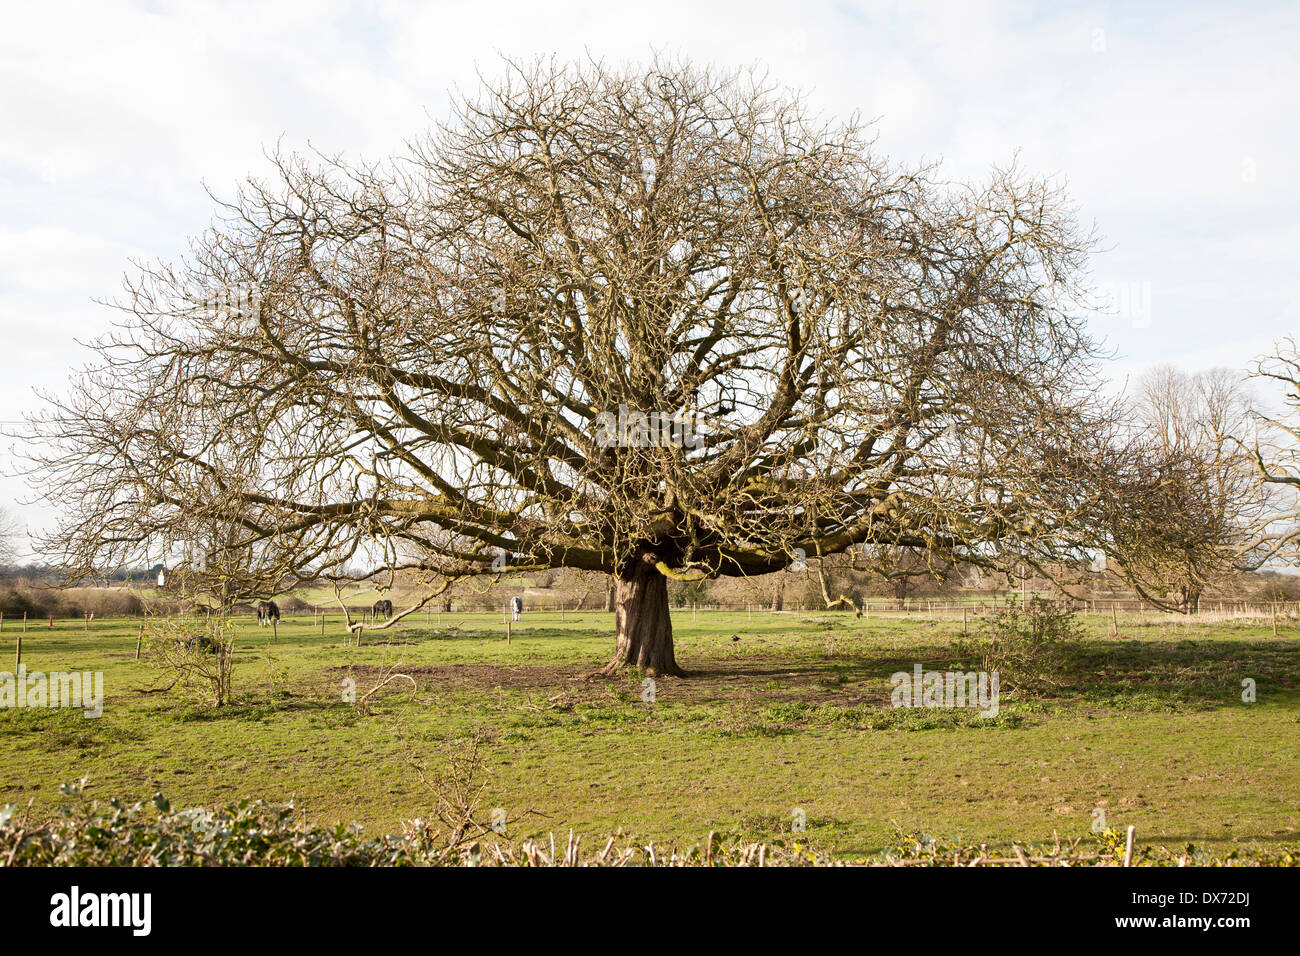 Horse chestnut tree, Aesculus hippocastanum, in winter growing in field, Sutton, Suffolk, England - Stock Image